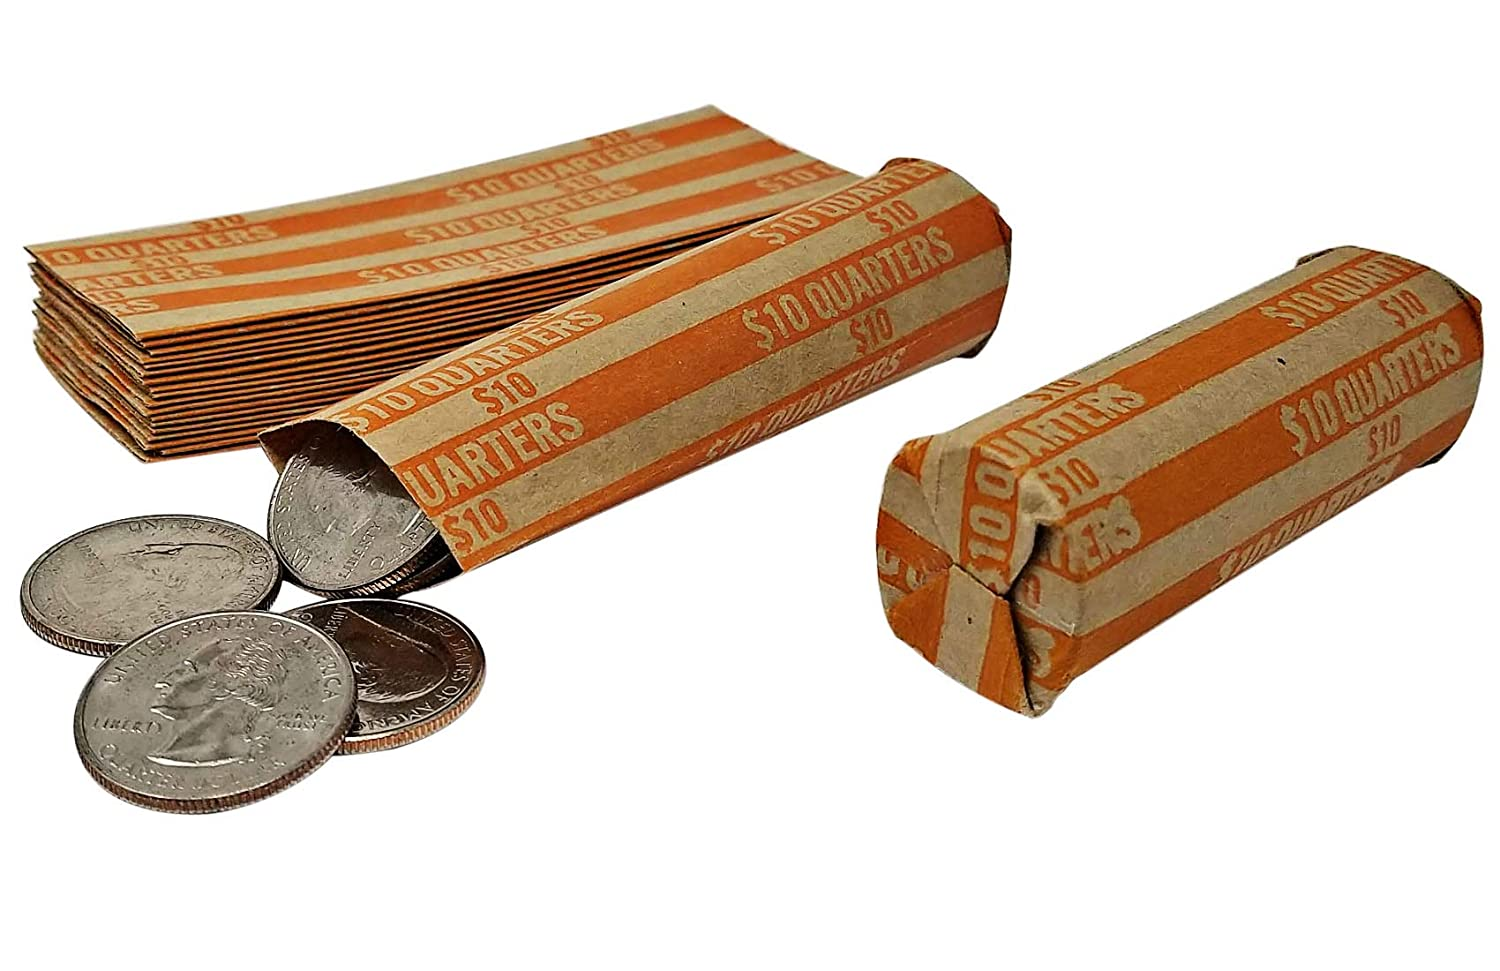 J Mark 100 Coin Roll Wrappers and J Mark Coin Deposit Slip Flat Coin Rollers Dime